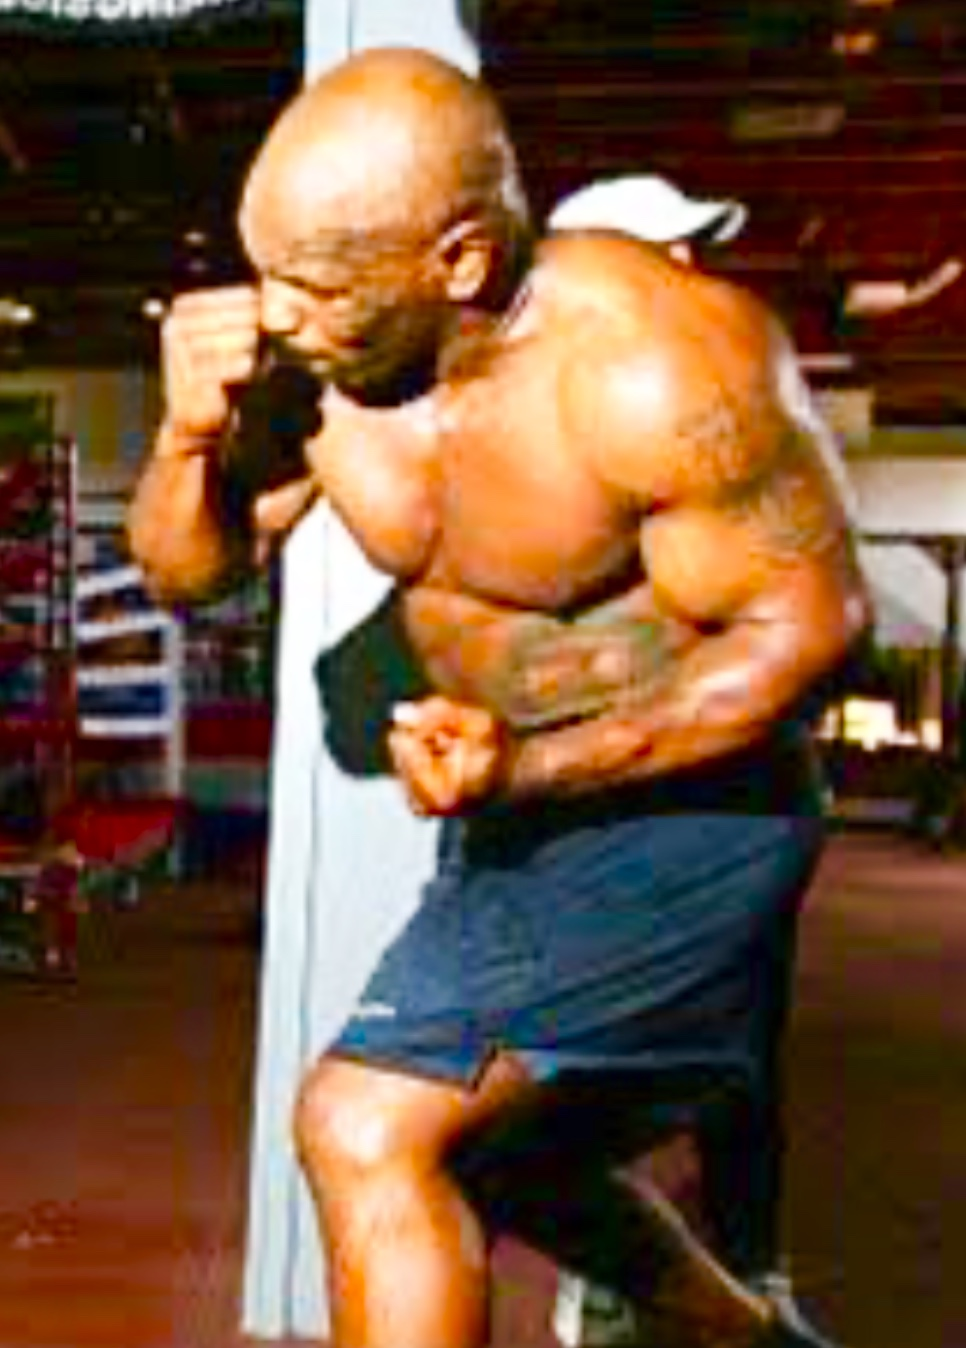 Keith Middlebrook, Keith Middlebrook Mike Tyson, Mike Tyson vs Roy Jones, Iron Mike Tyson, Roy Captain Hook Jones, Keith Middlebrook, Keith Middlebrook Real Iron Man, Keith Middlebrook Apparel Line, Keith Middlebrook Brand, Keith Middlebrook Super Entrepreneur Icon, Keith Middlebrook Foundation, NFL, MLB, NBA, NASCAR, Boxing, YouTube Keith Middlebrook, Britney Spears, Britney Spears Pop Icon, Sexy Britney Spears, Sexy Britney, Britney Spears Keith Middlebrook, Keith Middlebrook Britney Spears, Britney Spears Las Vegas, Keith Middlebrook, Keith Middlebrook Bio, Keith Middlebrook Real Iron Man, Keith Middlebrook Super Entrepreneur Icon, Keith Middlebrook Reverse Aging Technology, Keith Middlebrook Bodybuilder, YouTube.com Keith Middlebrook, Keith Middlebrook, Keith Middlebrook Foundation, Charity for Kids, YouTube.com Keith Middlebrook, Keith Middlebrook Twitter @1KMiddlebrook, Keith Middlebrook Instagram @KeithMiddlebrook1, Success Wealth Prosperity, Keith Middlebrook Marvel, Natural Organic, Keith Middlebrook Nutrition, Keith Middlebrook Gym talk, Keith Middlebrook Ballers, IMDB.com Keith Middlebrook, Keith Middlebrook Muscle, God, Goals, Gym, Gratitude, Giving, Keith Middlebrook Real Estate, Keith Middlebrook Xccelerated Success, Keith Middlebrook Training, Training, Natural, Organic, Keith Middlebrook Fans, Keith Middlebrook Followers, Keith Middlebrook Net Worth 2020, Keith Middlebrook Billionaire, Keith Middlebrook Success, Keith Middlebrook Winning, Keith Middlebrook WON, Keith Middlebrook Training, NFL, NBA, MLB, Boxing, Racing, NASCAR, NFL Keith Middlebrook, Keith Middlebrook NFL, Keith Middlebrook Sexy, Keith Middlebrook Lindsay Lohan, Lindsay Lohan Keith Middlebrook, Keith Middlebrook Real Iron Man, Keith Middlebrook Marvel, Keith Middlebrook Bio, Keith Middlebrook Real Iron Man, Keith Middlebrook Super Entrepreneur Icon, Britney Spears Keith Middlebrook, Keith Middlebrook Britney Spears, YouTube.com Keith Middlebrook, Keith Middlebrook Foundation, Charity for Kids, Success Wealth Prosperity, Keith Middlebrook Charities, Keith Middlebrook Bodybuilder, Keith Middlebrook Bodybuilding, Natural Organic, Keith Middlebrook Nutrition, Keith Middlrebrook The Rock, The Rock Keith Middlebrook, The Rock vs The Real Iron Man, Keith Middlebrook Ballers IMDB, IMDB Keith Middlebrook Ballers, Dwayne Johnson vs Keith Middlebrook, Keith Middlebrook Dwayne Johnson, Keith Middlebrook The Rock vs The Real Iron Man for Charity, Stop World Hunger, StJude, Wounded Warriors Project, Keith Middlebrook Charities.